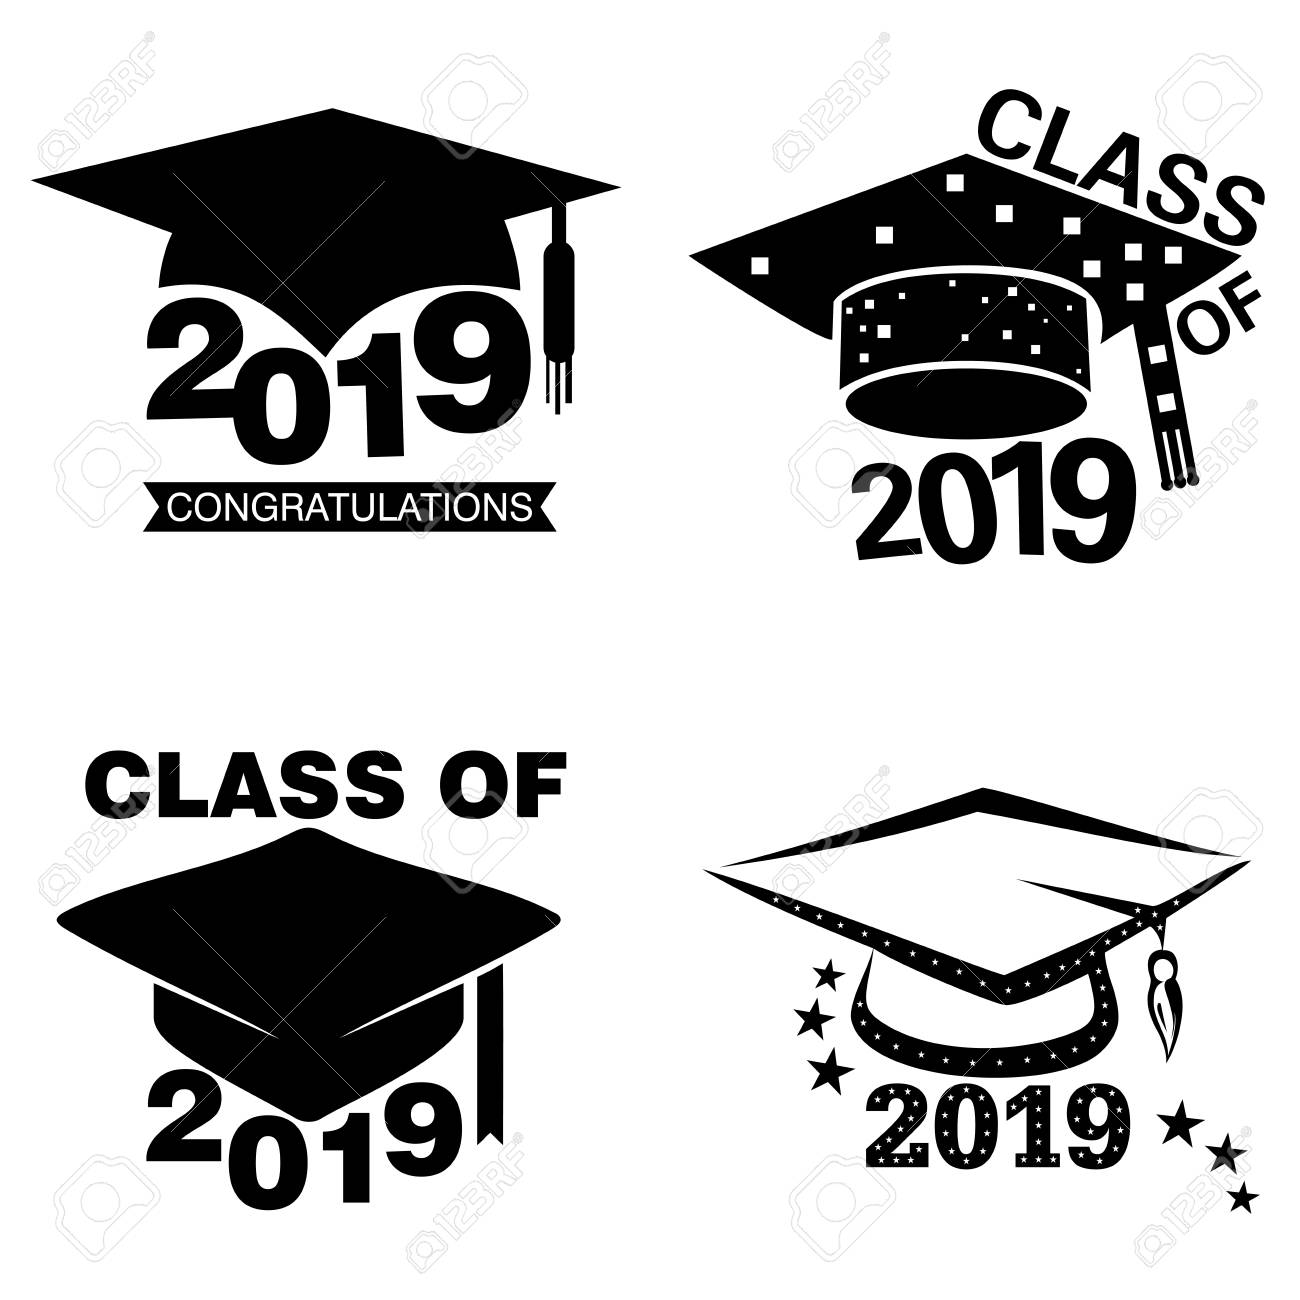 Four black and white graduation sticker or label designs on an isolated white background stock vector